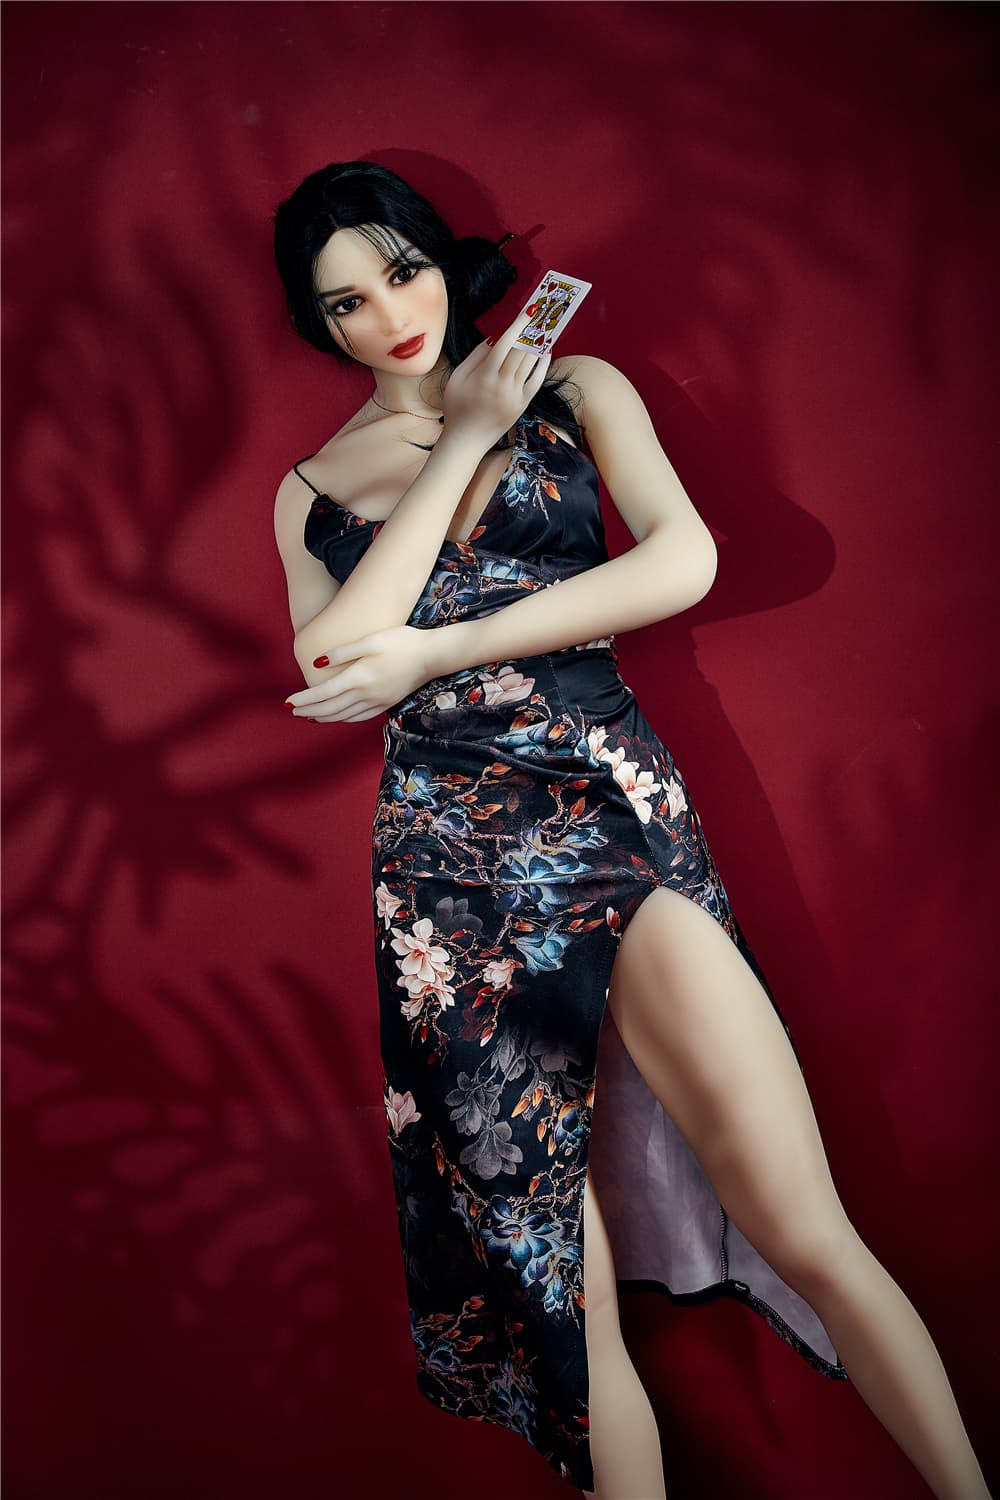 bonita 168cm black hair athletic flat chested tpe sex doll(4)